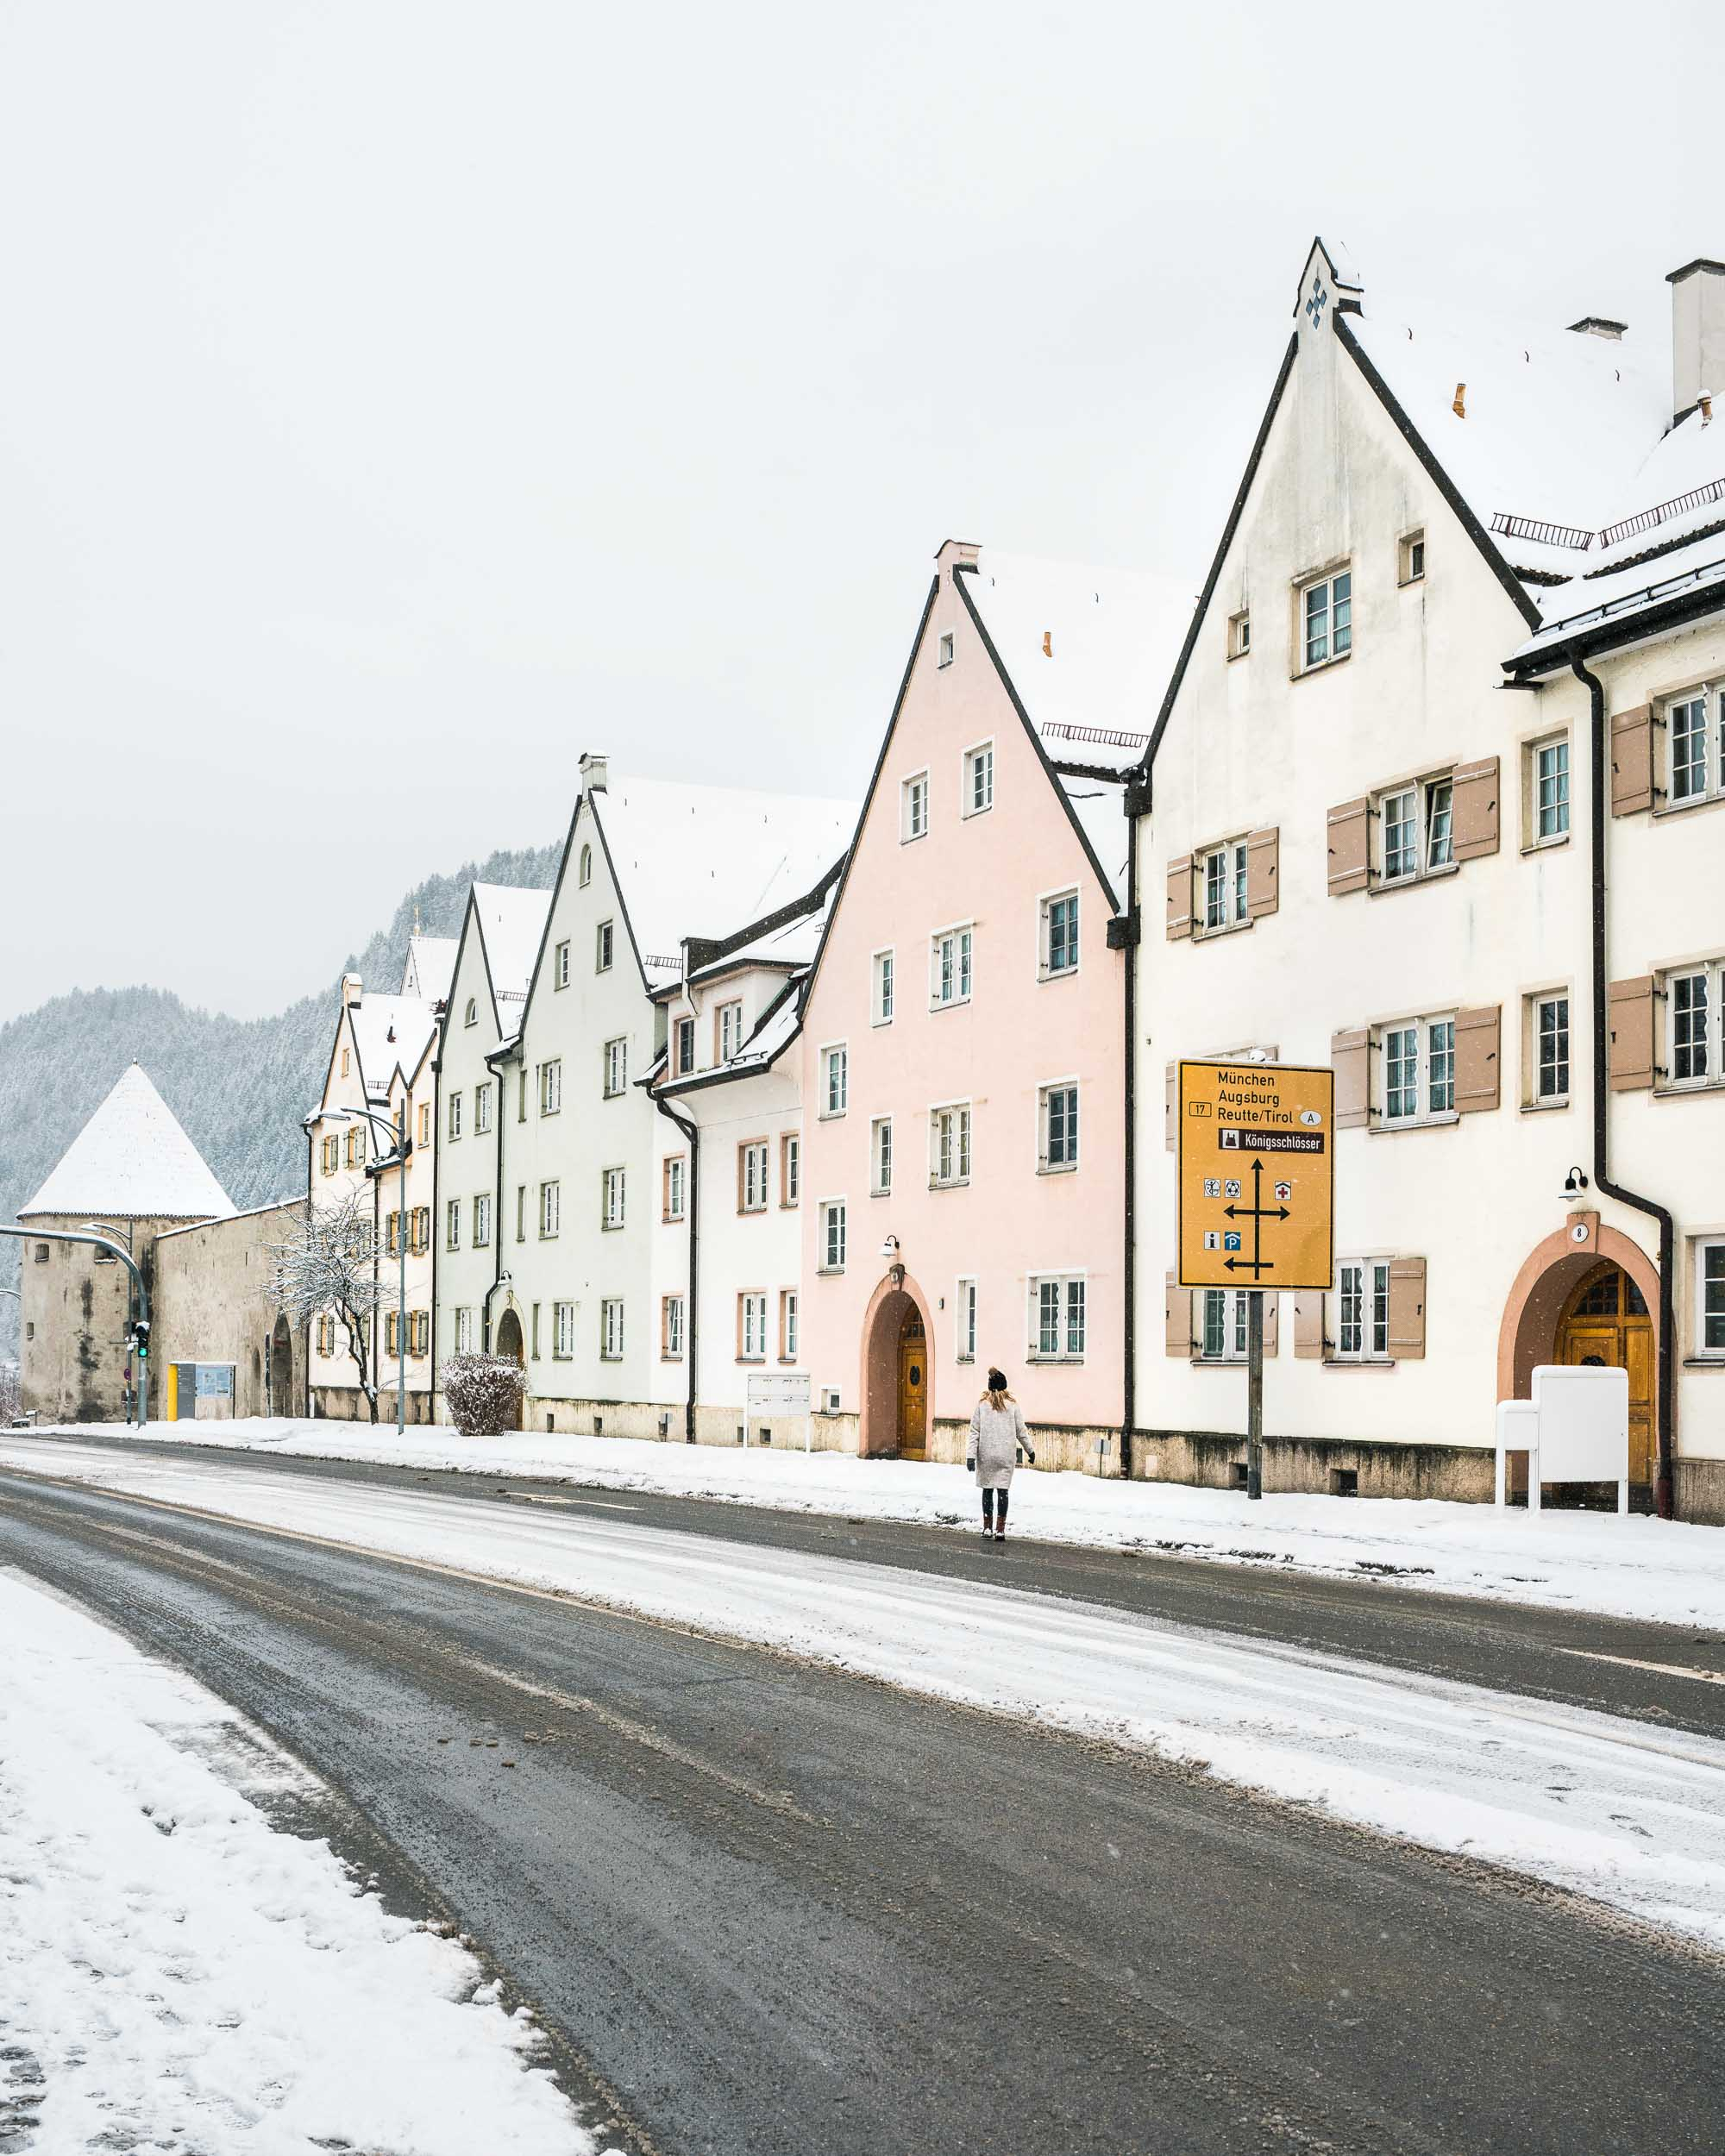 Travel blogger Selena Taylor in the pastel town of Fussen near Neuschwanstein Castle in Germany